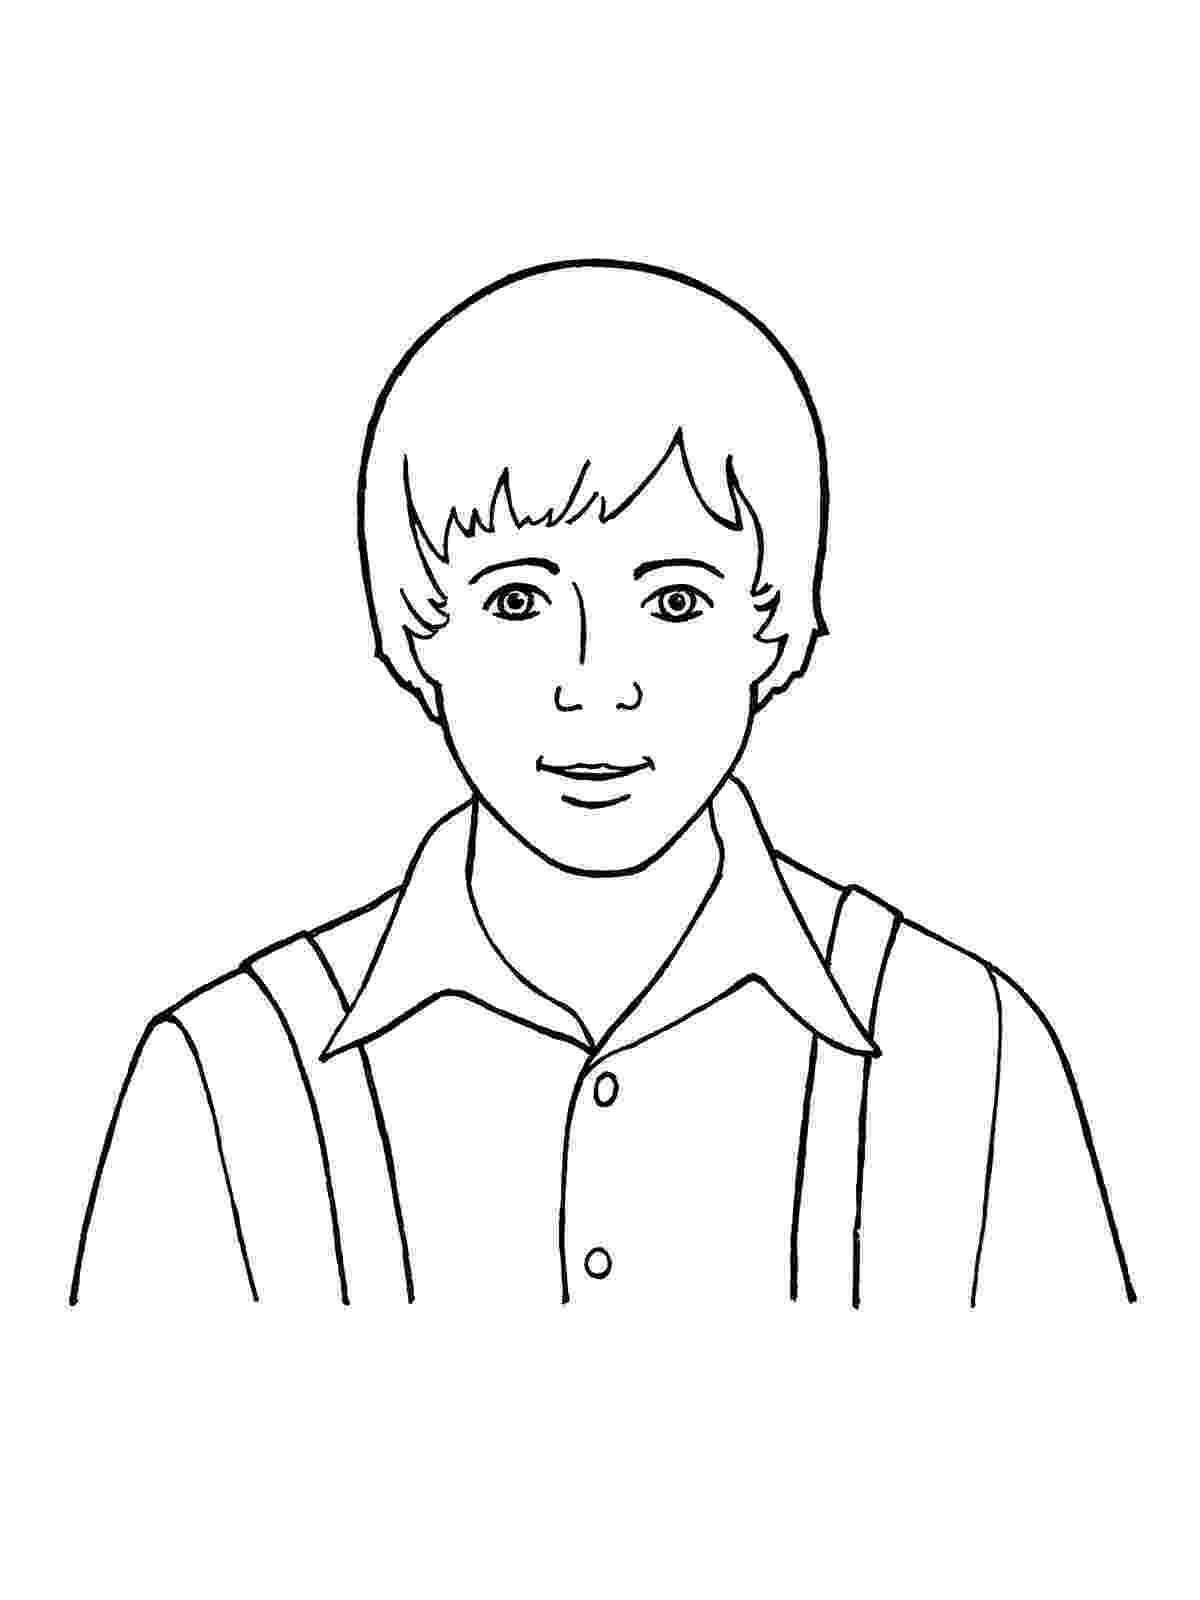 man coloring page free printable gingerbread man coloring pages for kids page man coloring